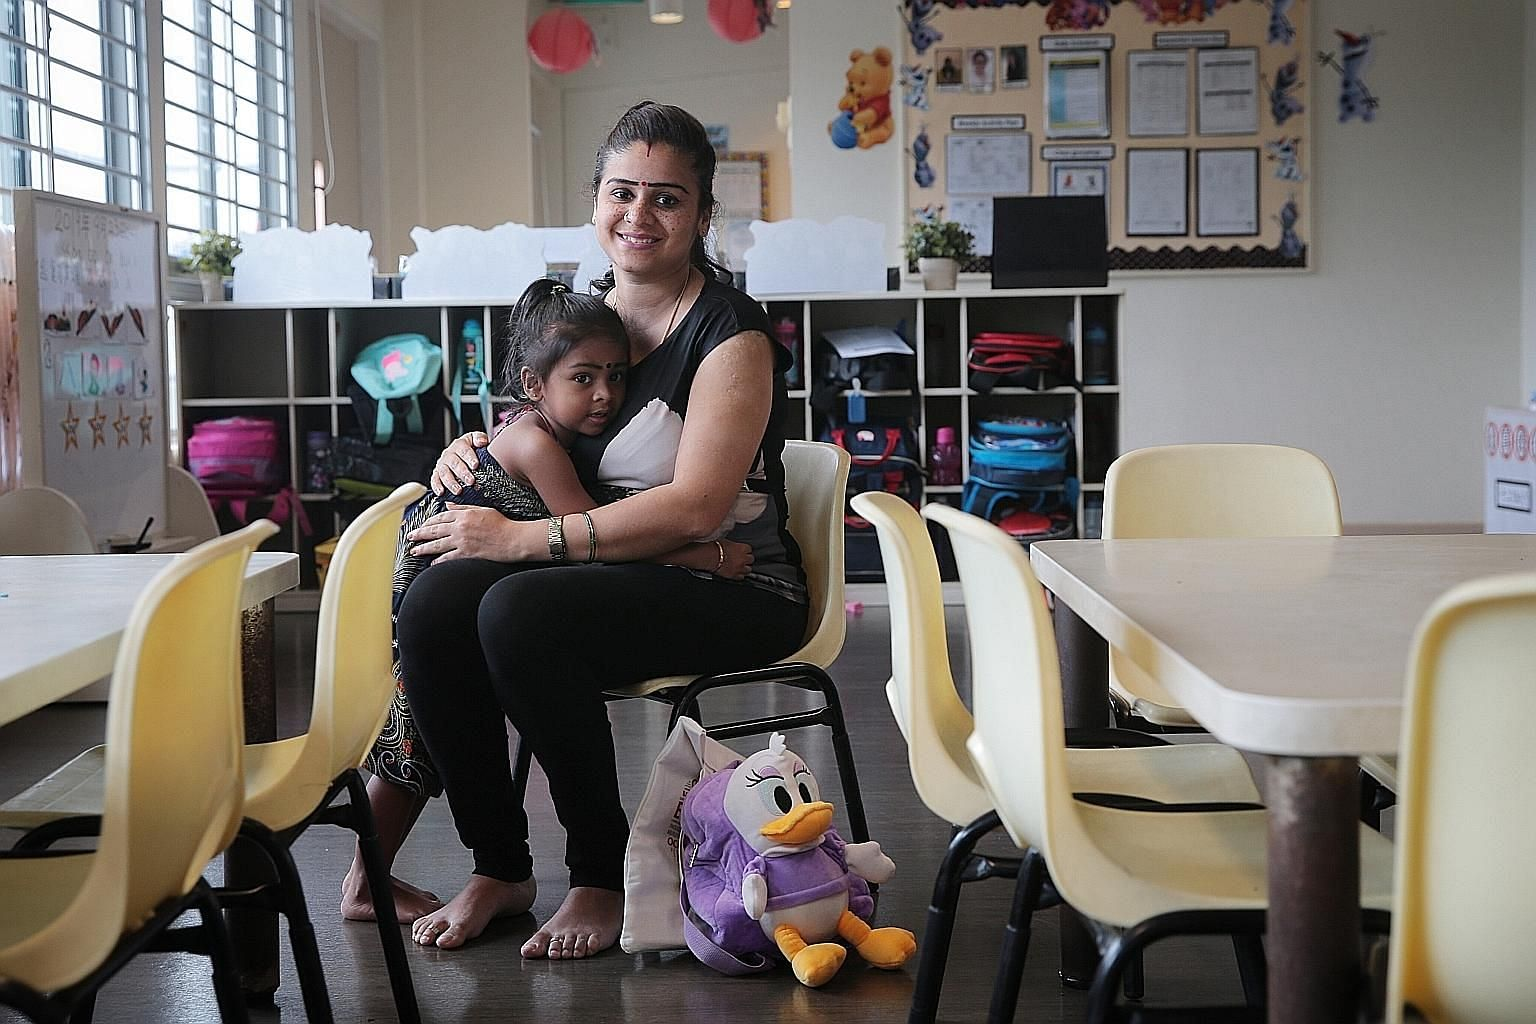 Madam Thaneswary Sangra Narayanan, whose daughter Tansikaa Letchumanan just turned three and is attending a My First Skool centre in Boon Lay, says more financial support will be a relief for her family. Monthly pre-school fees for her daughter cost